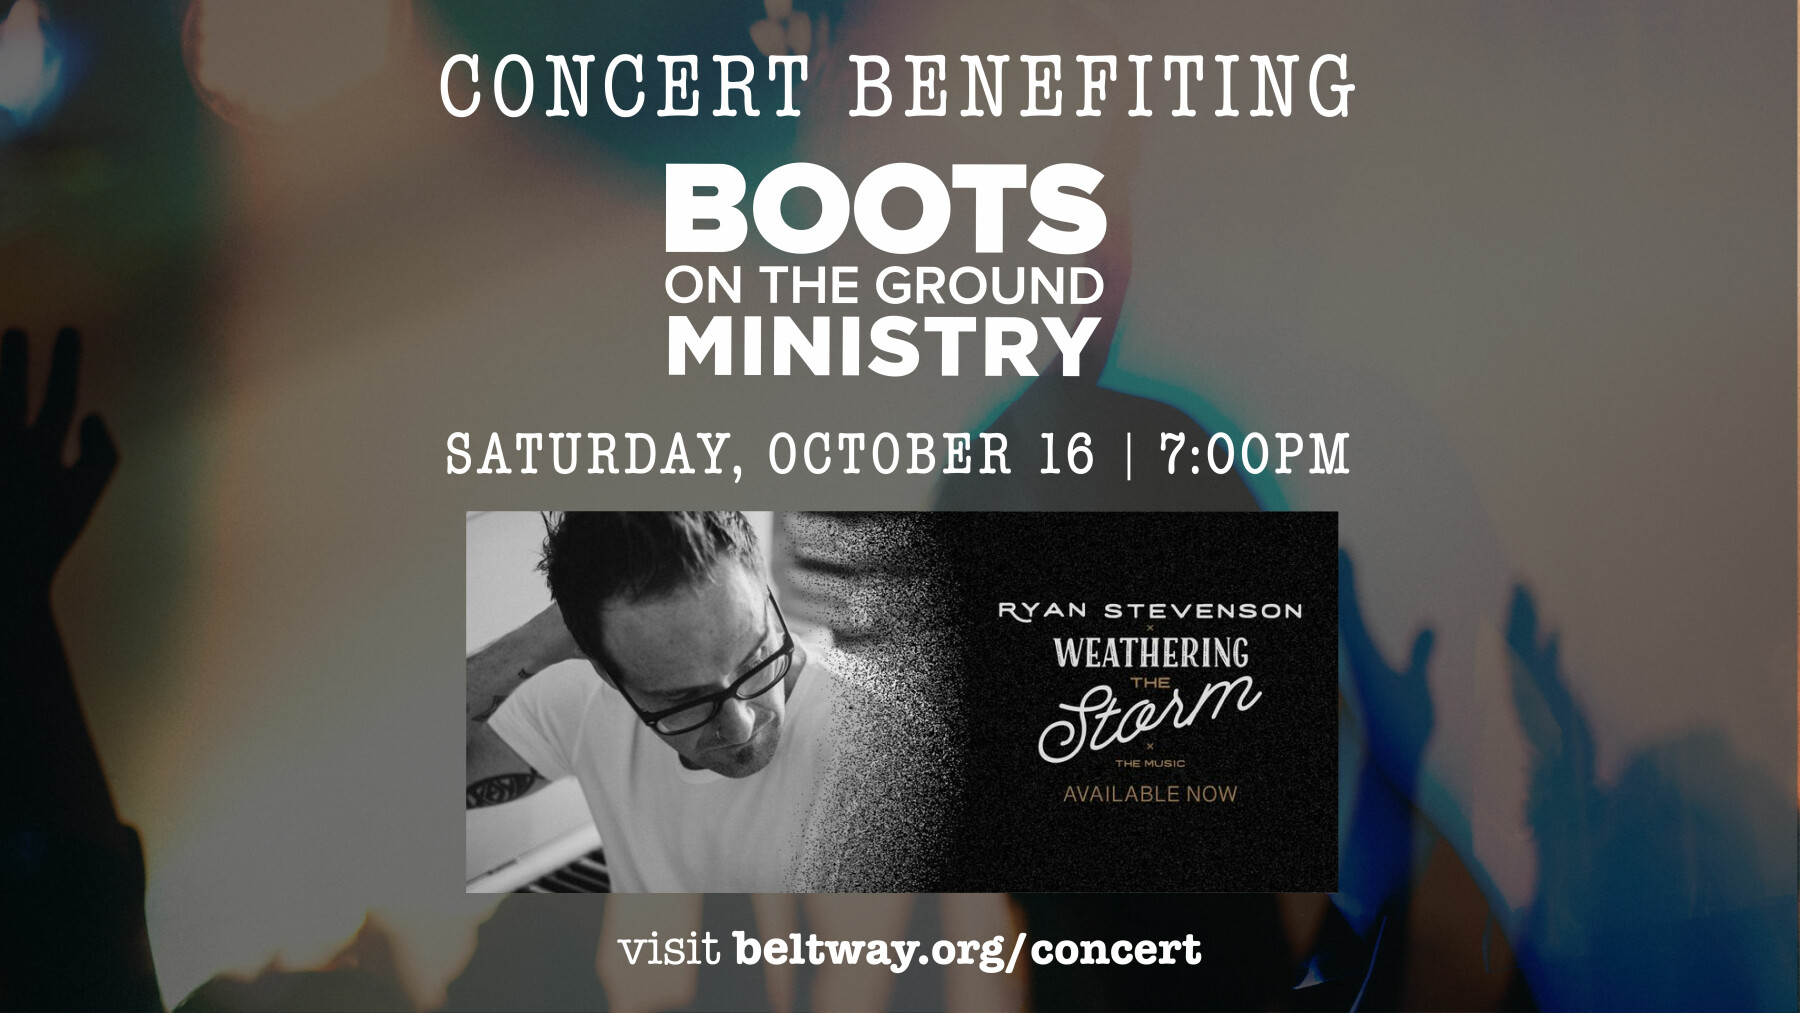 Concert Benefiting Boots on the Ground